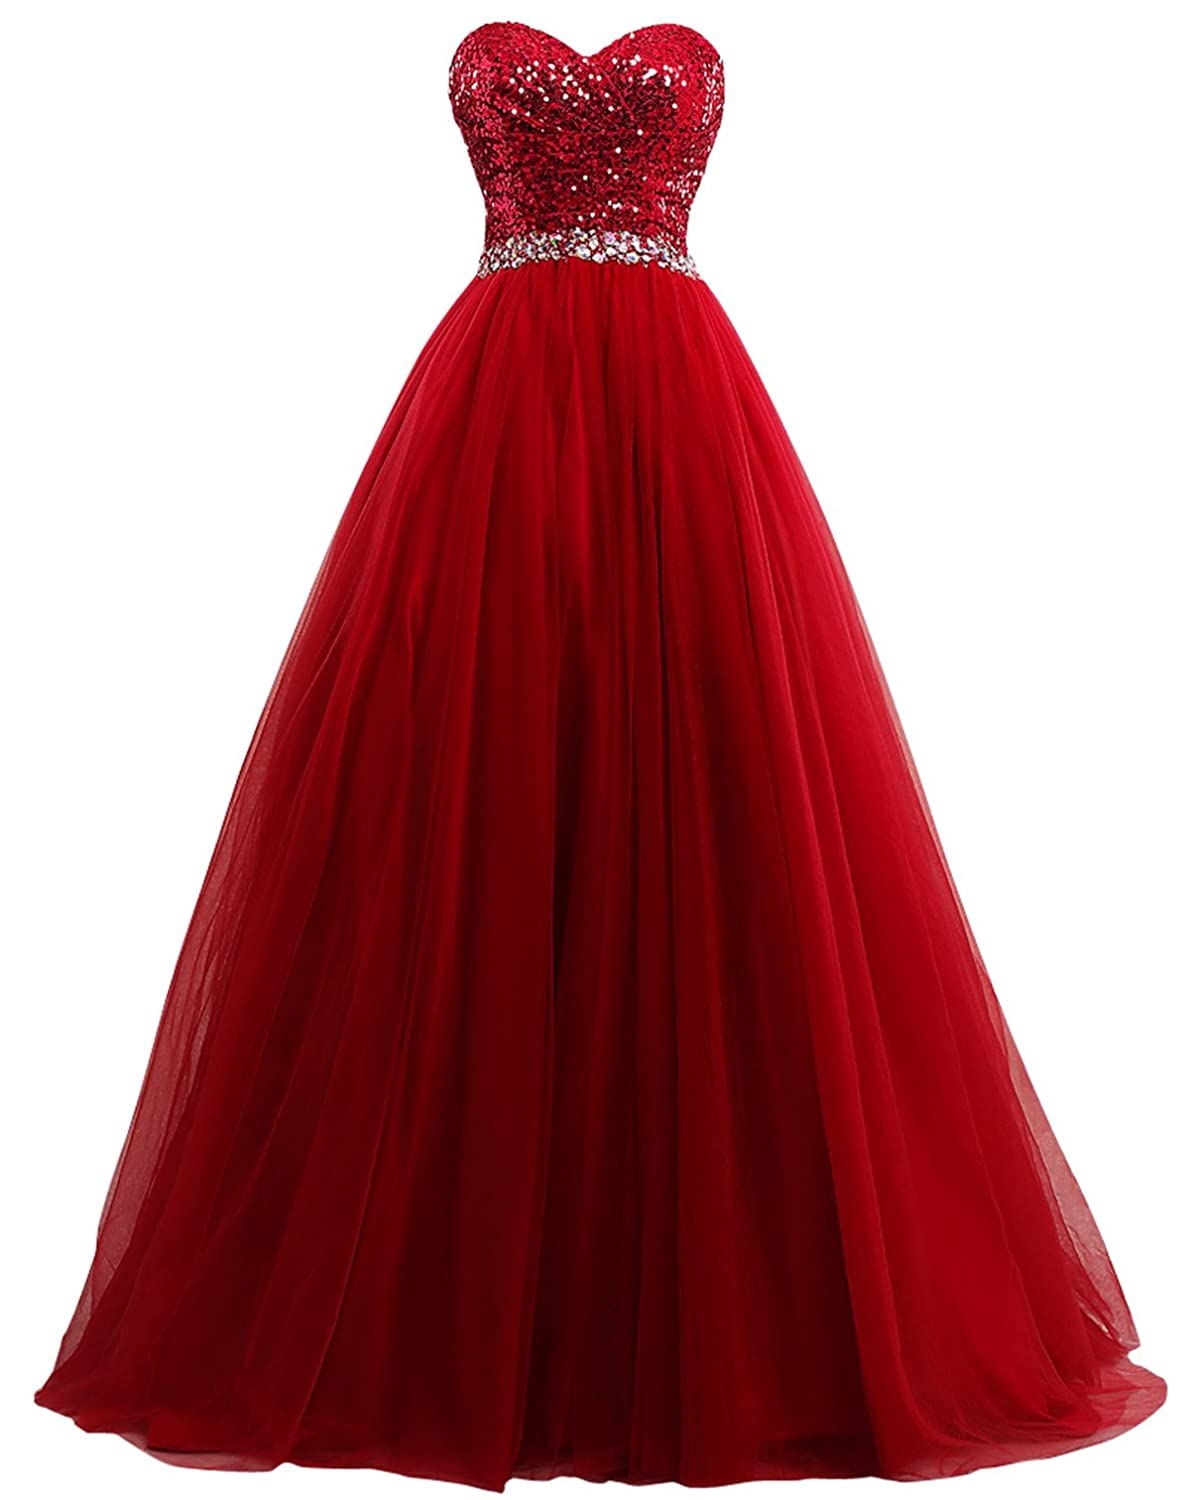 Dark Red Fanciest Women's Sweet 16 Tulle Sequin Ball Gown Prom Dresses for Quinceanera